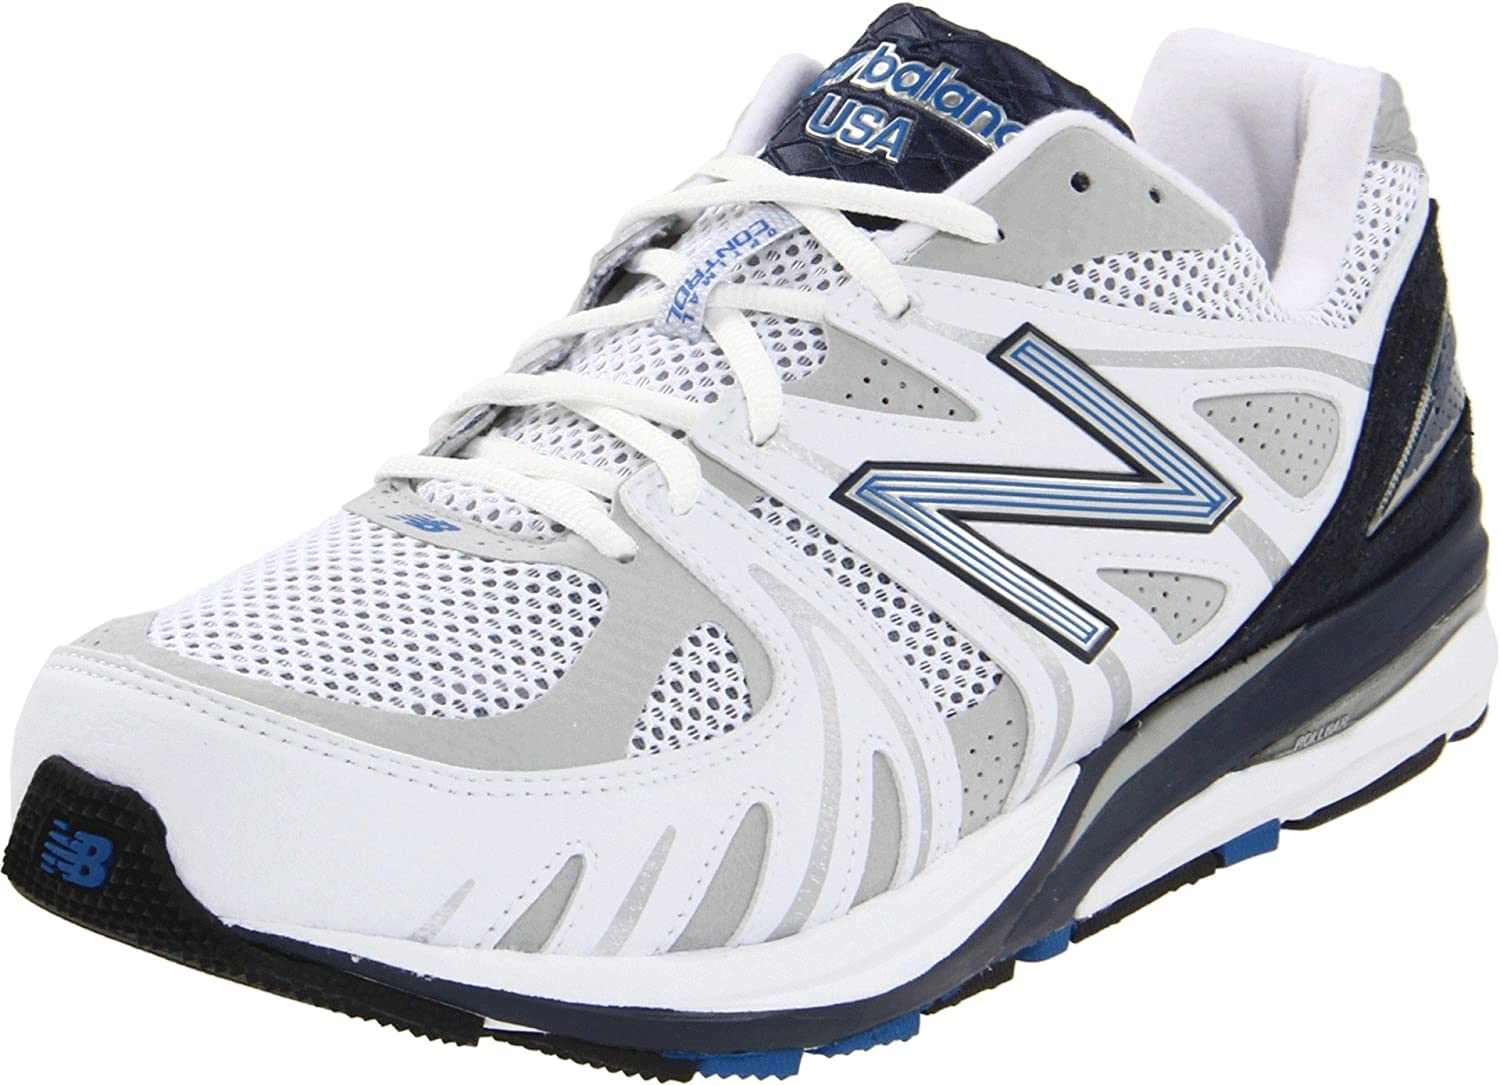 New Balance 1122 Discover One Special Running Shoe